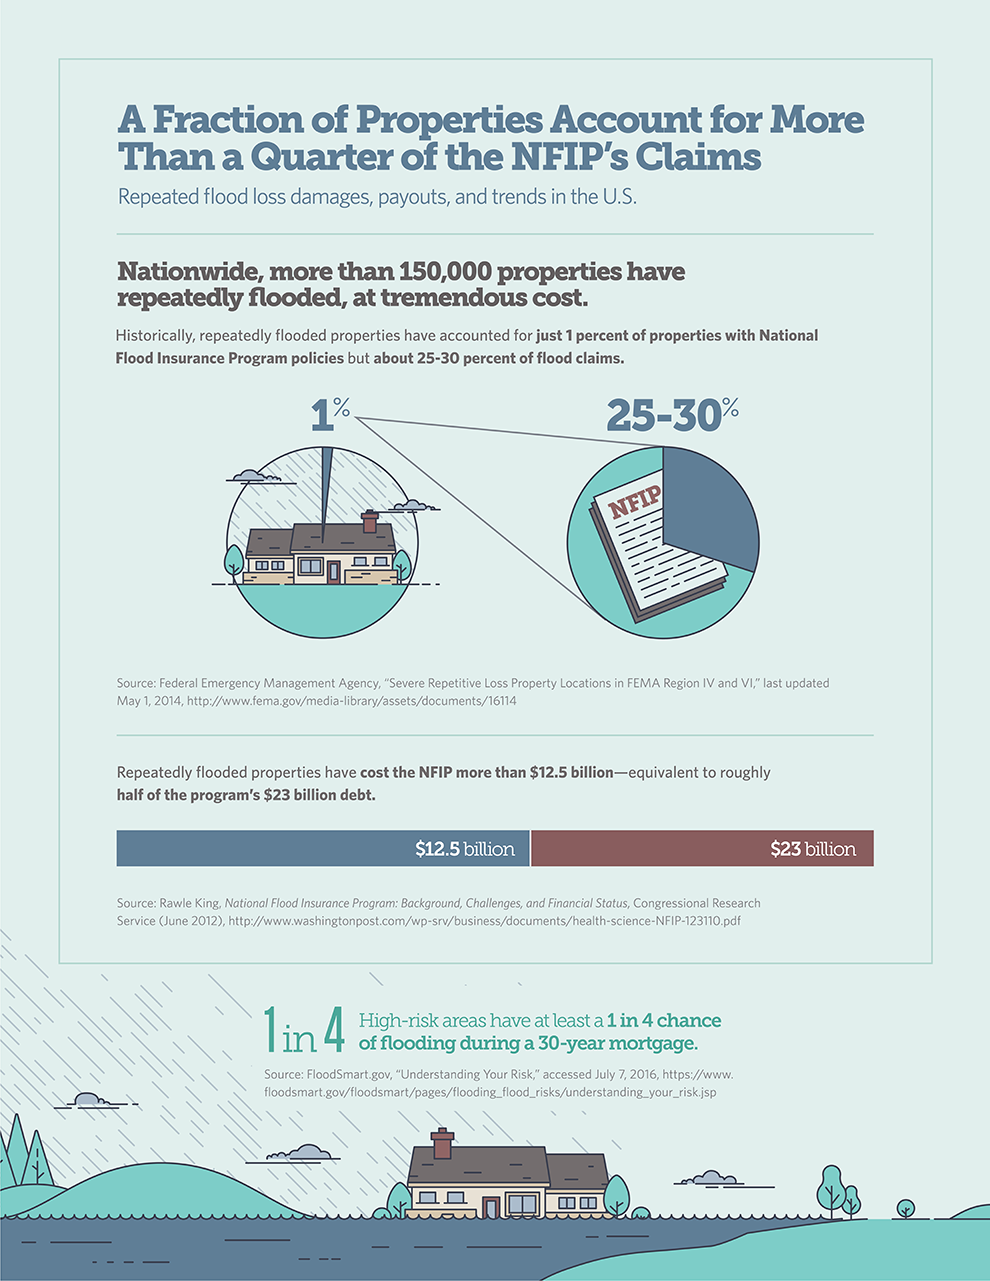 A Fraction of Properties Account for More Than a Quarter of the NFIP's Claims